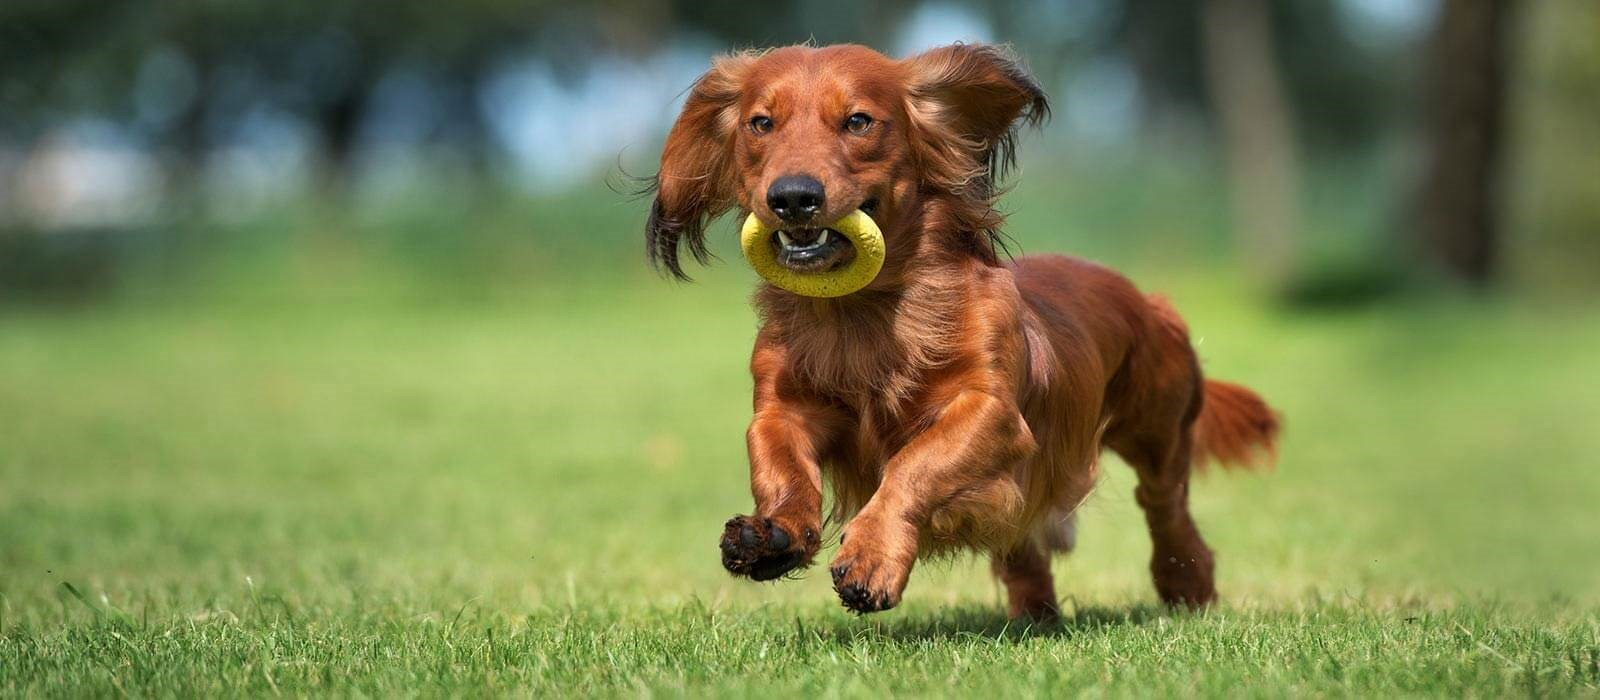 Tips for choosing the right toys and activities for your dog